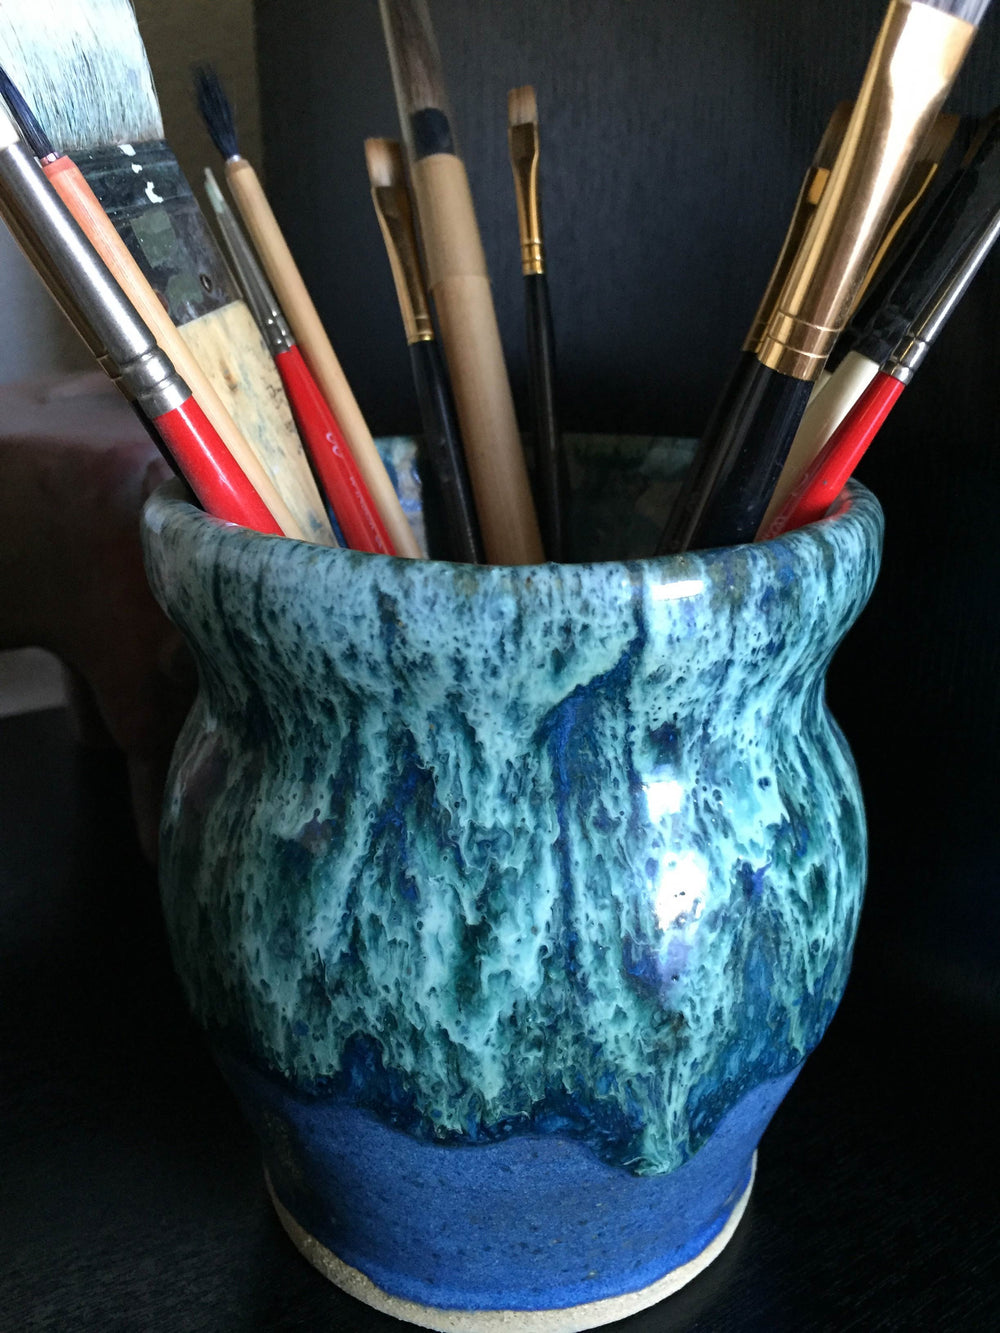 Ben Hogestyn Malibu Ceramics Pottery Glaze Paint brushes Holder